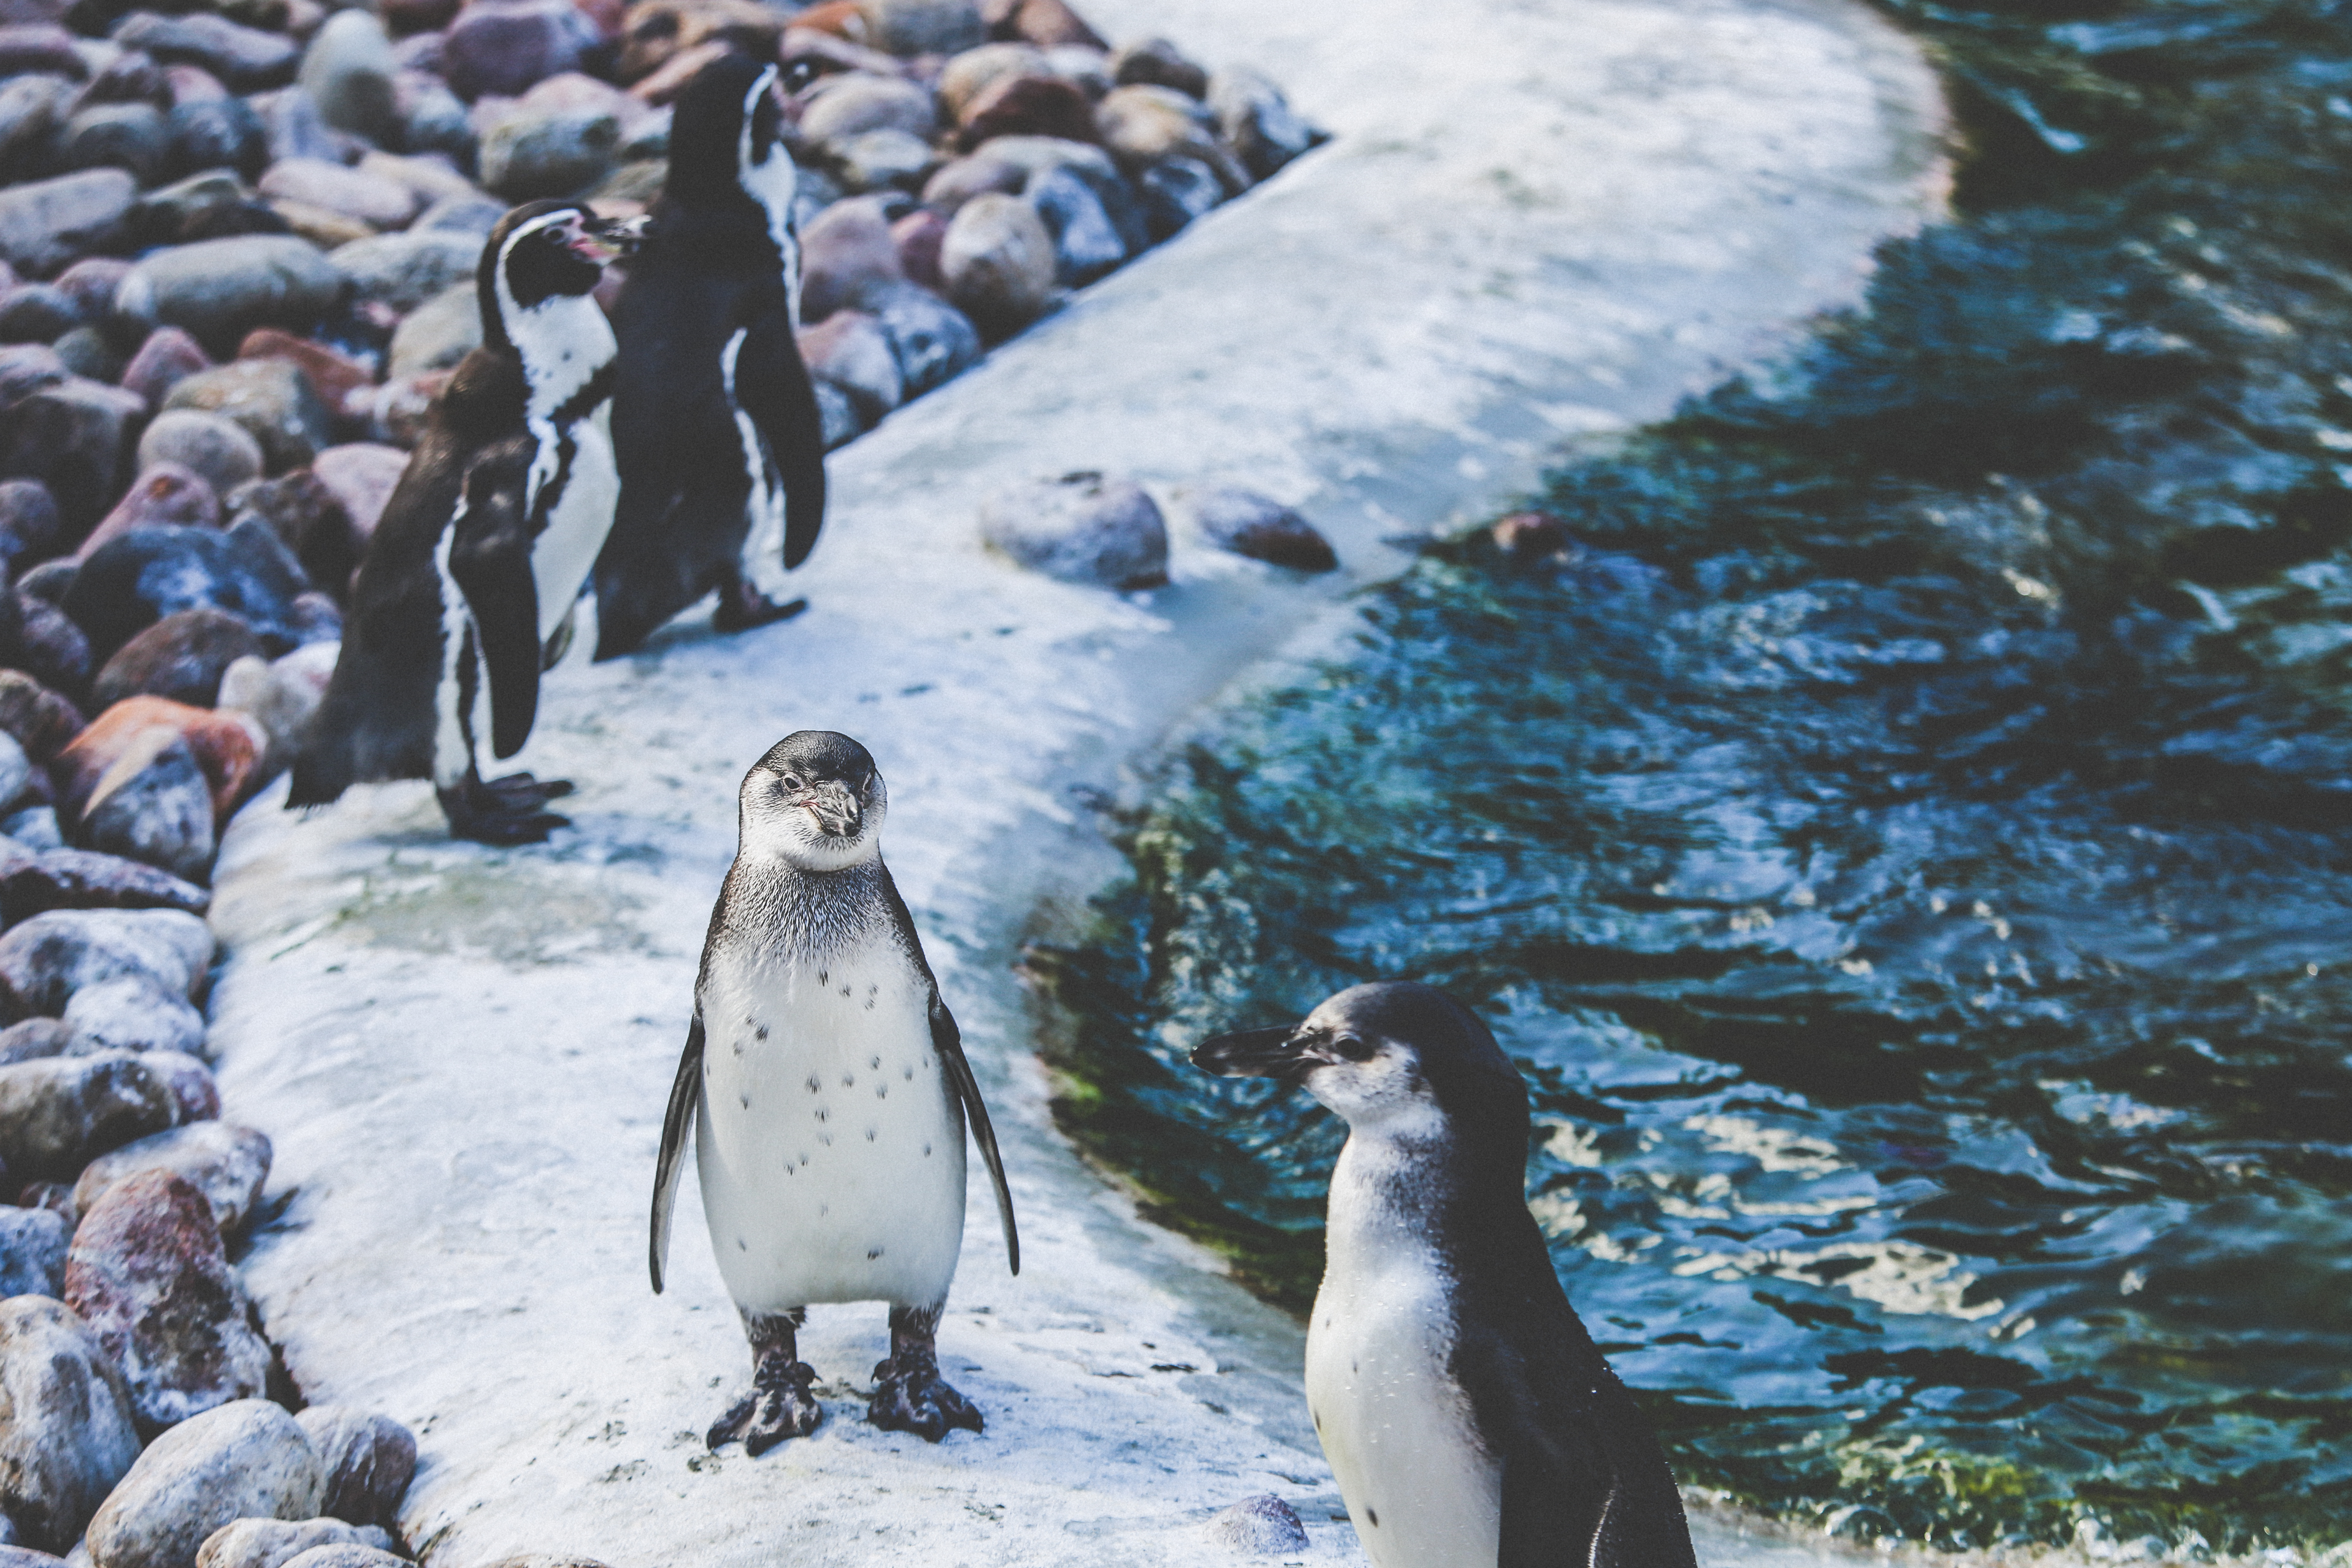 152928 download wallpaper Animals, Shore, Bank, Birds, Pinguins screensavers and pictures for free